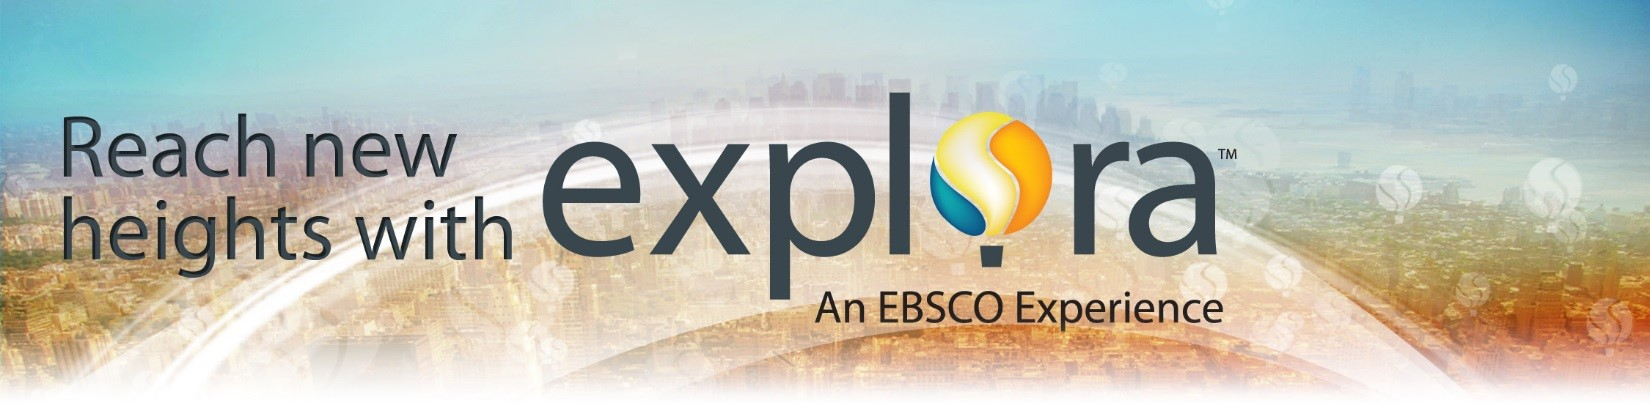 Reach New Heights with Explora